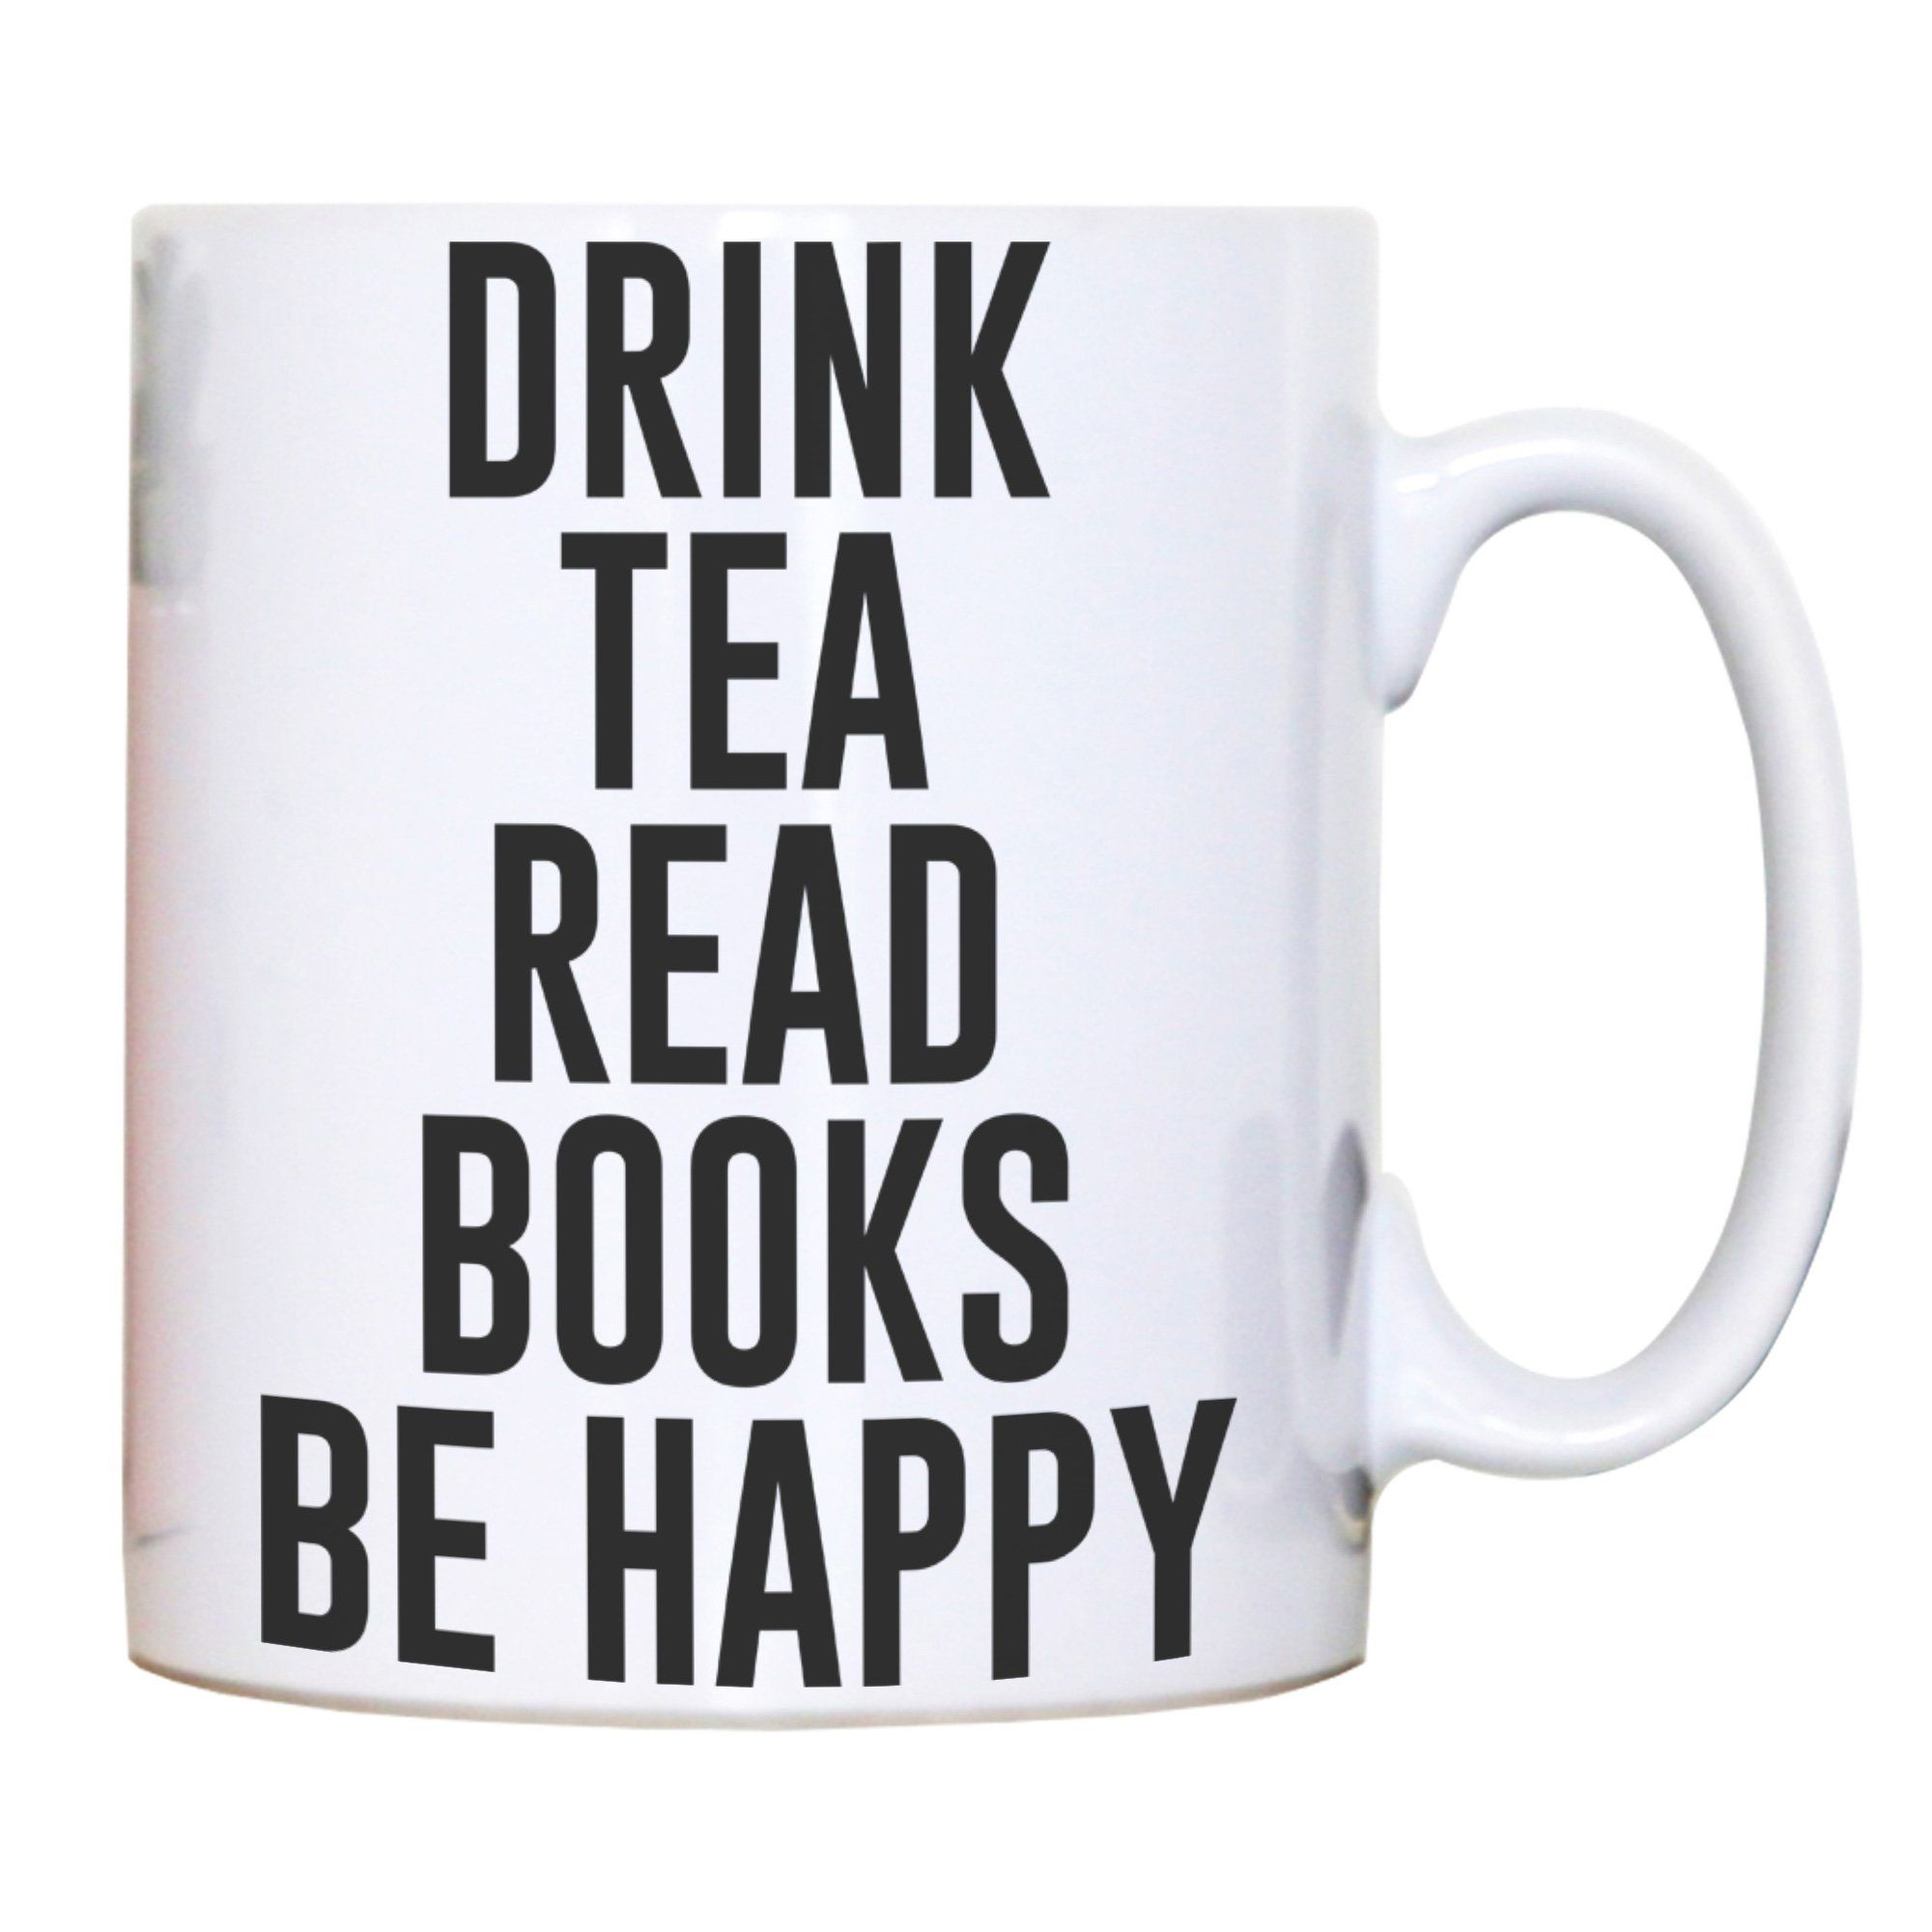 Drink tea read books be happy funny mug coffee tea cup in